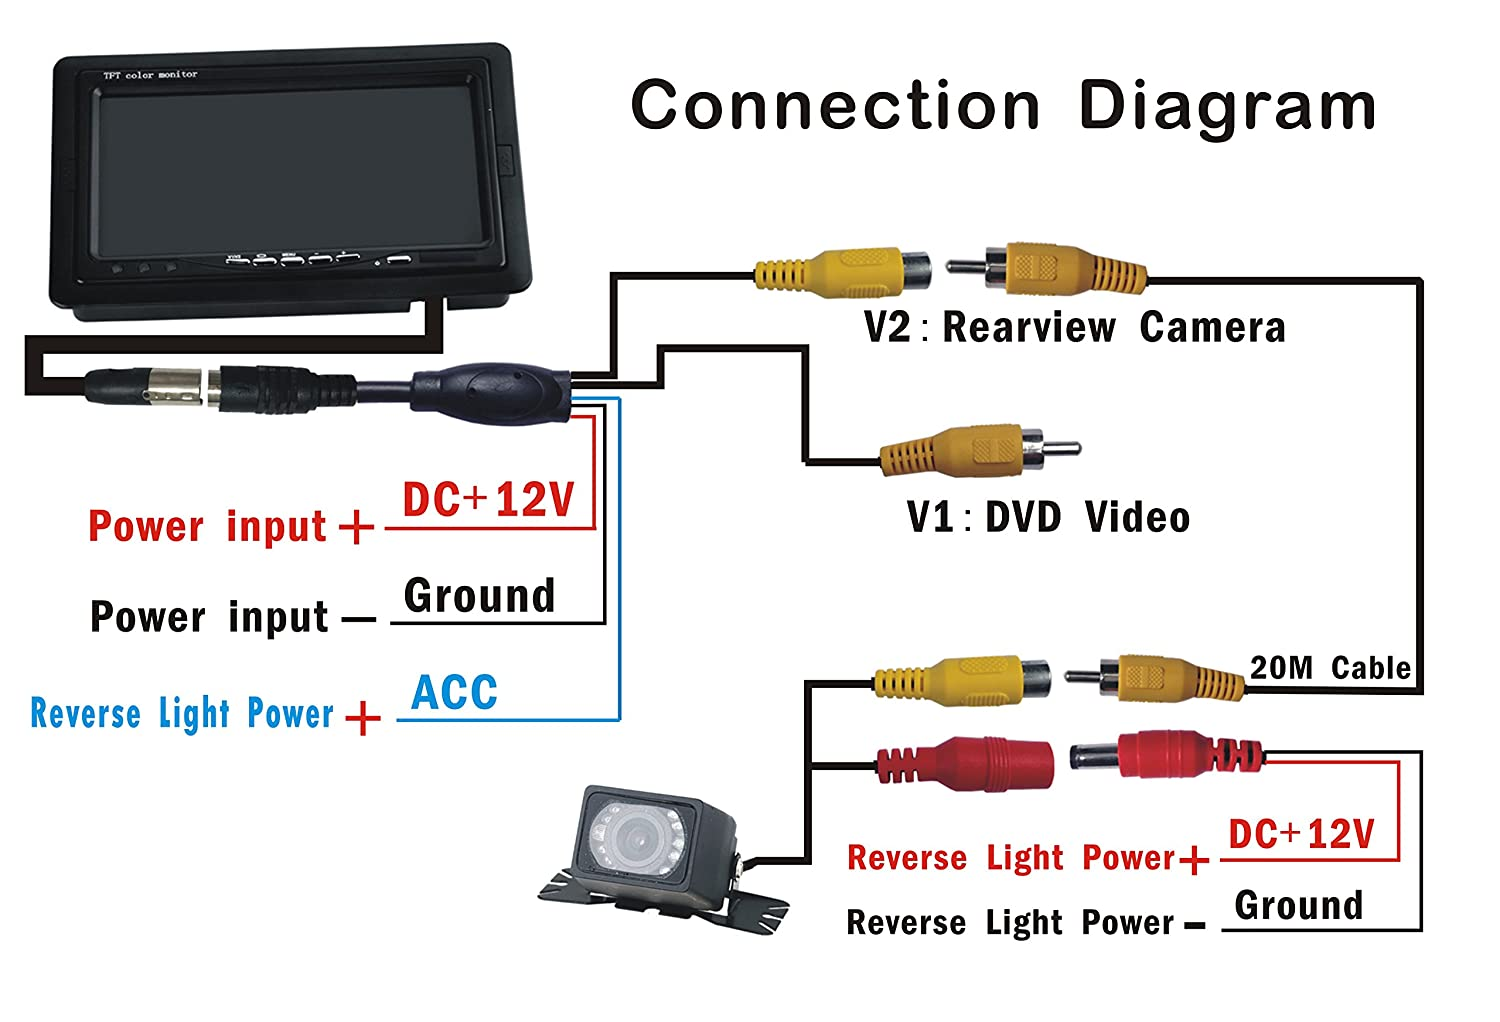 81KisOIYtBL._SL1500_ amazon com belle backup camera and monitor kit 7 inch tft lcd tft reversing camera wiring diagram at bayanpartner.co